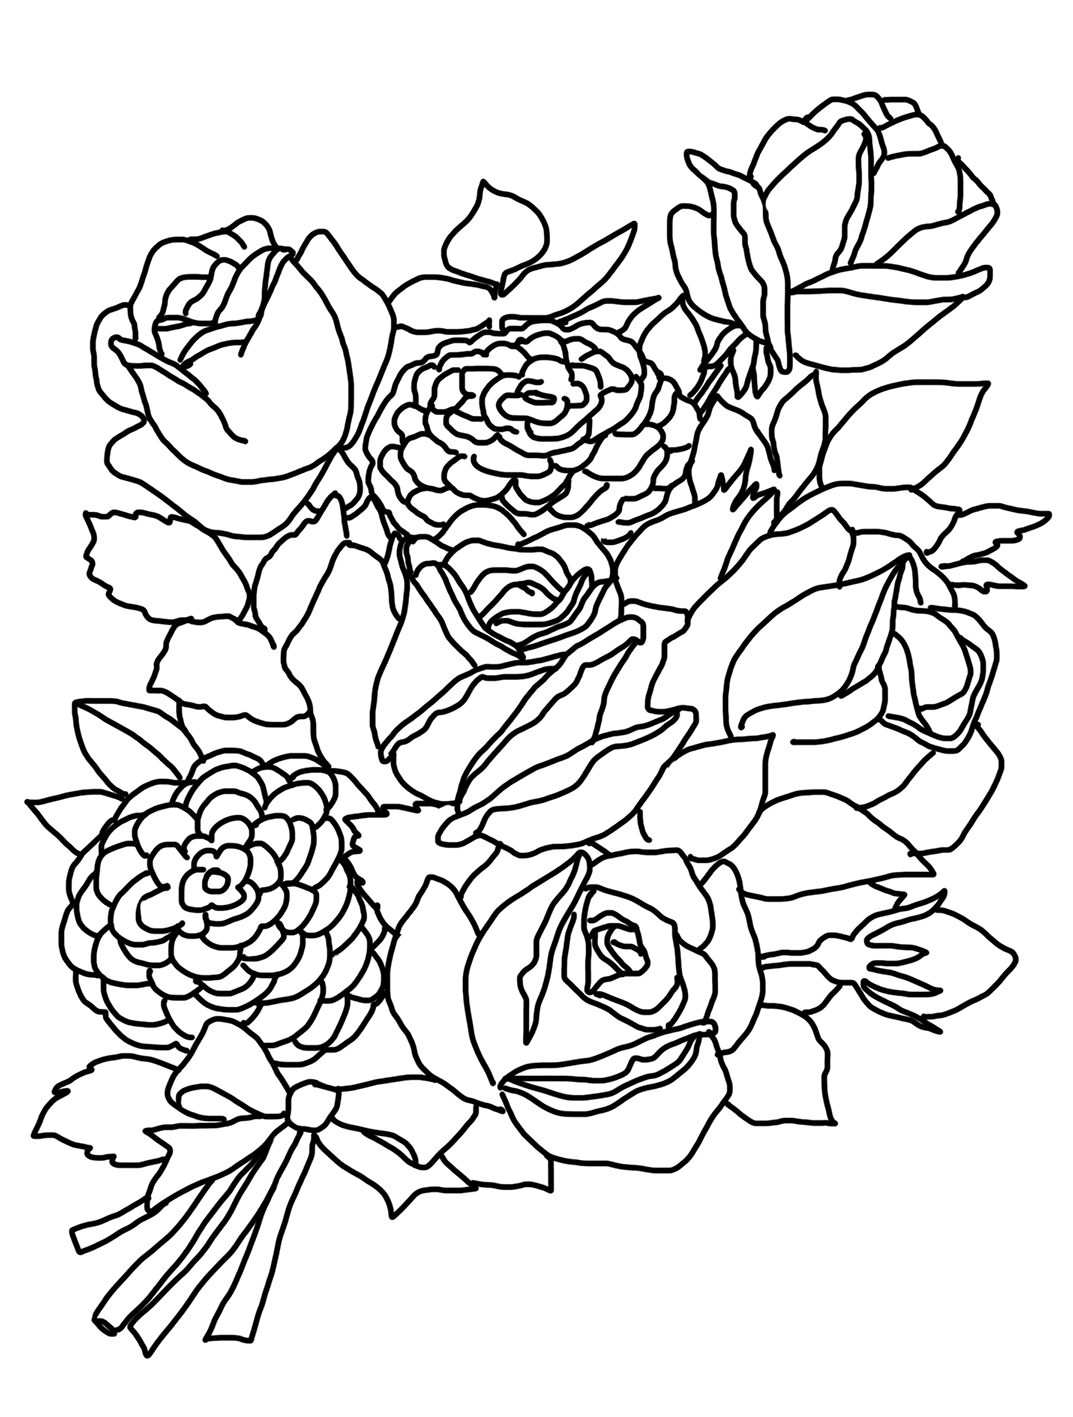 1073x1417 Flower Coloring Pages